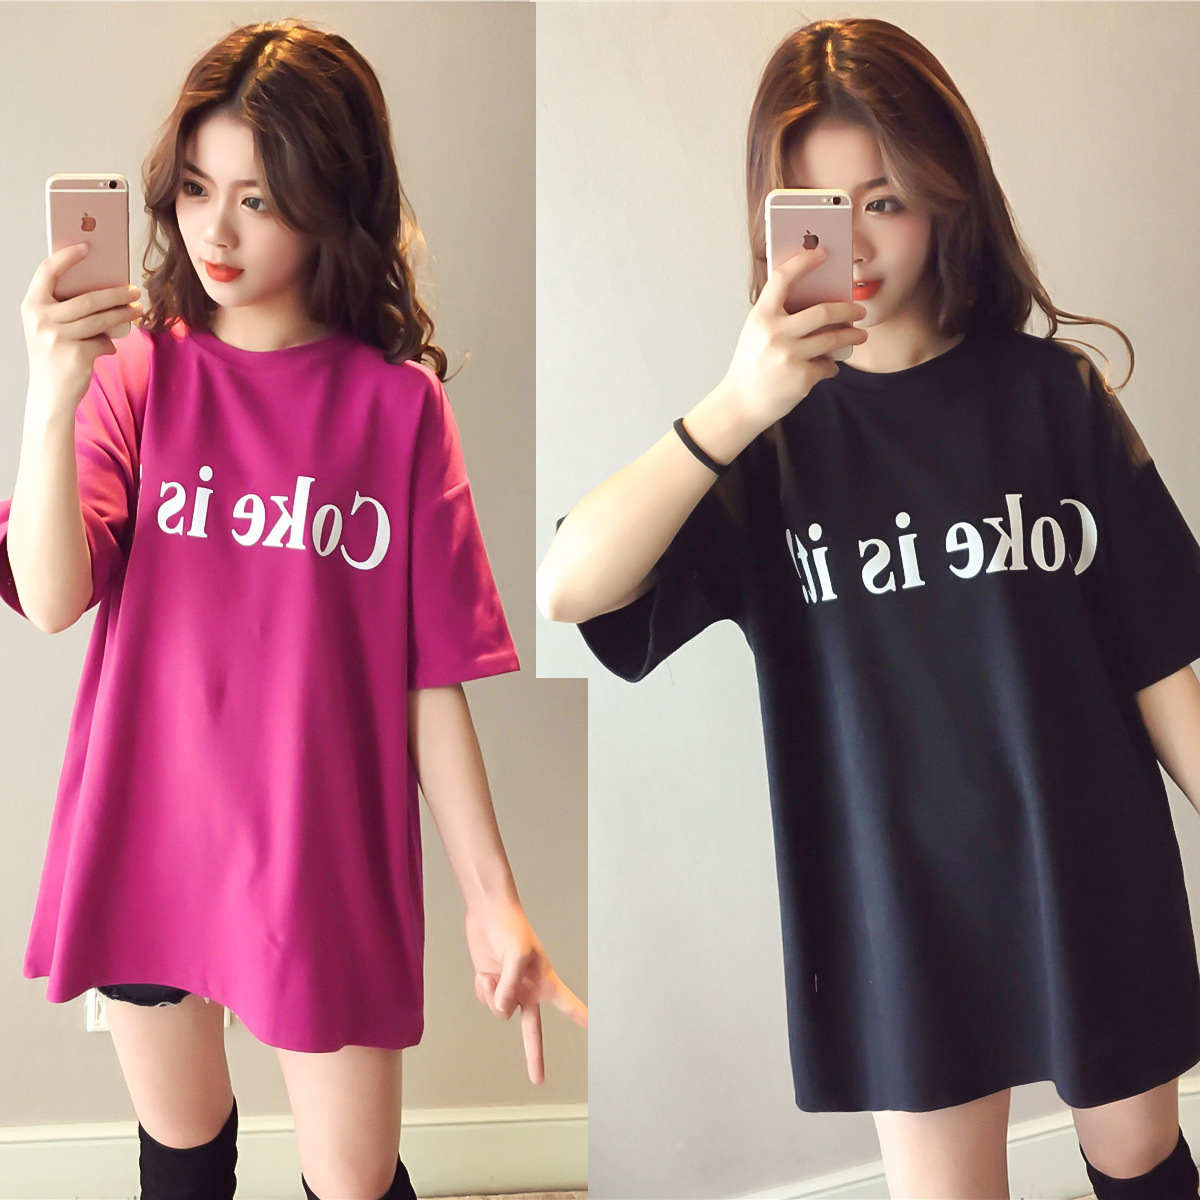 Summer <font><b>BF</b></font> Style Lettered Short Sleeve T-shirt Dress <font><b>Children</b></font> Mid-length 2018 New Style Harajuku-Style Loose-Fit Dress Women's Fa image